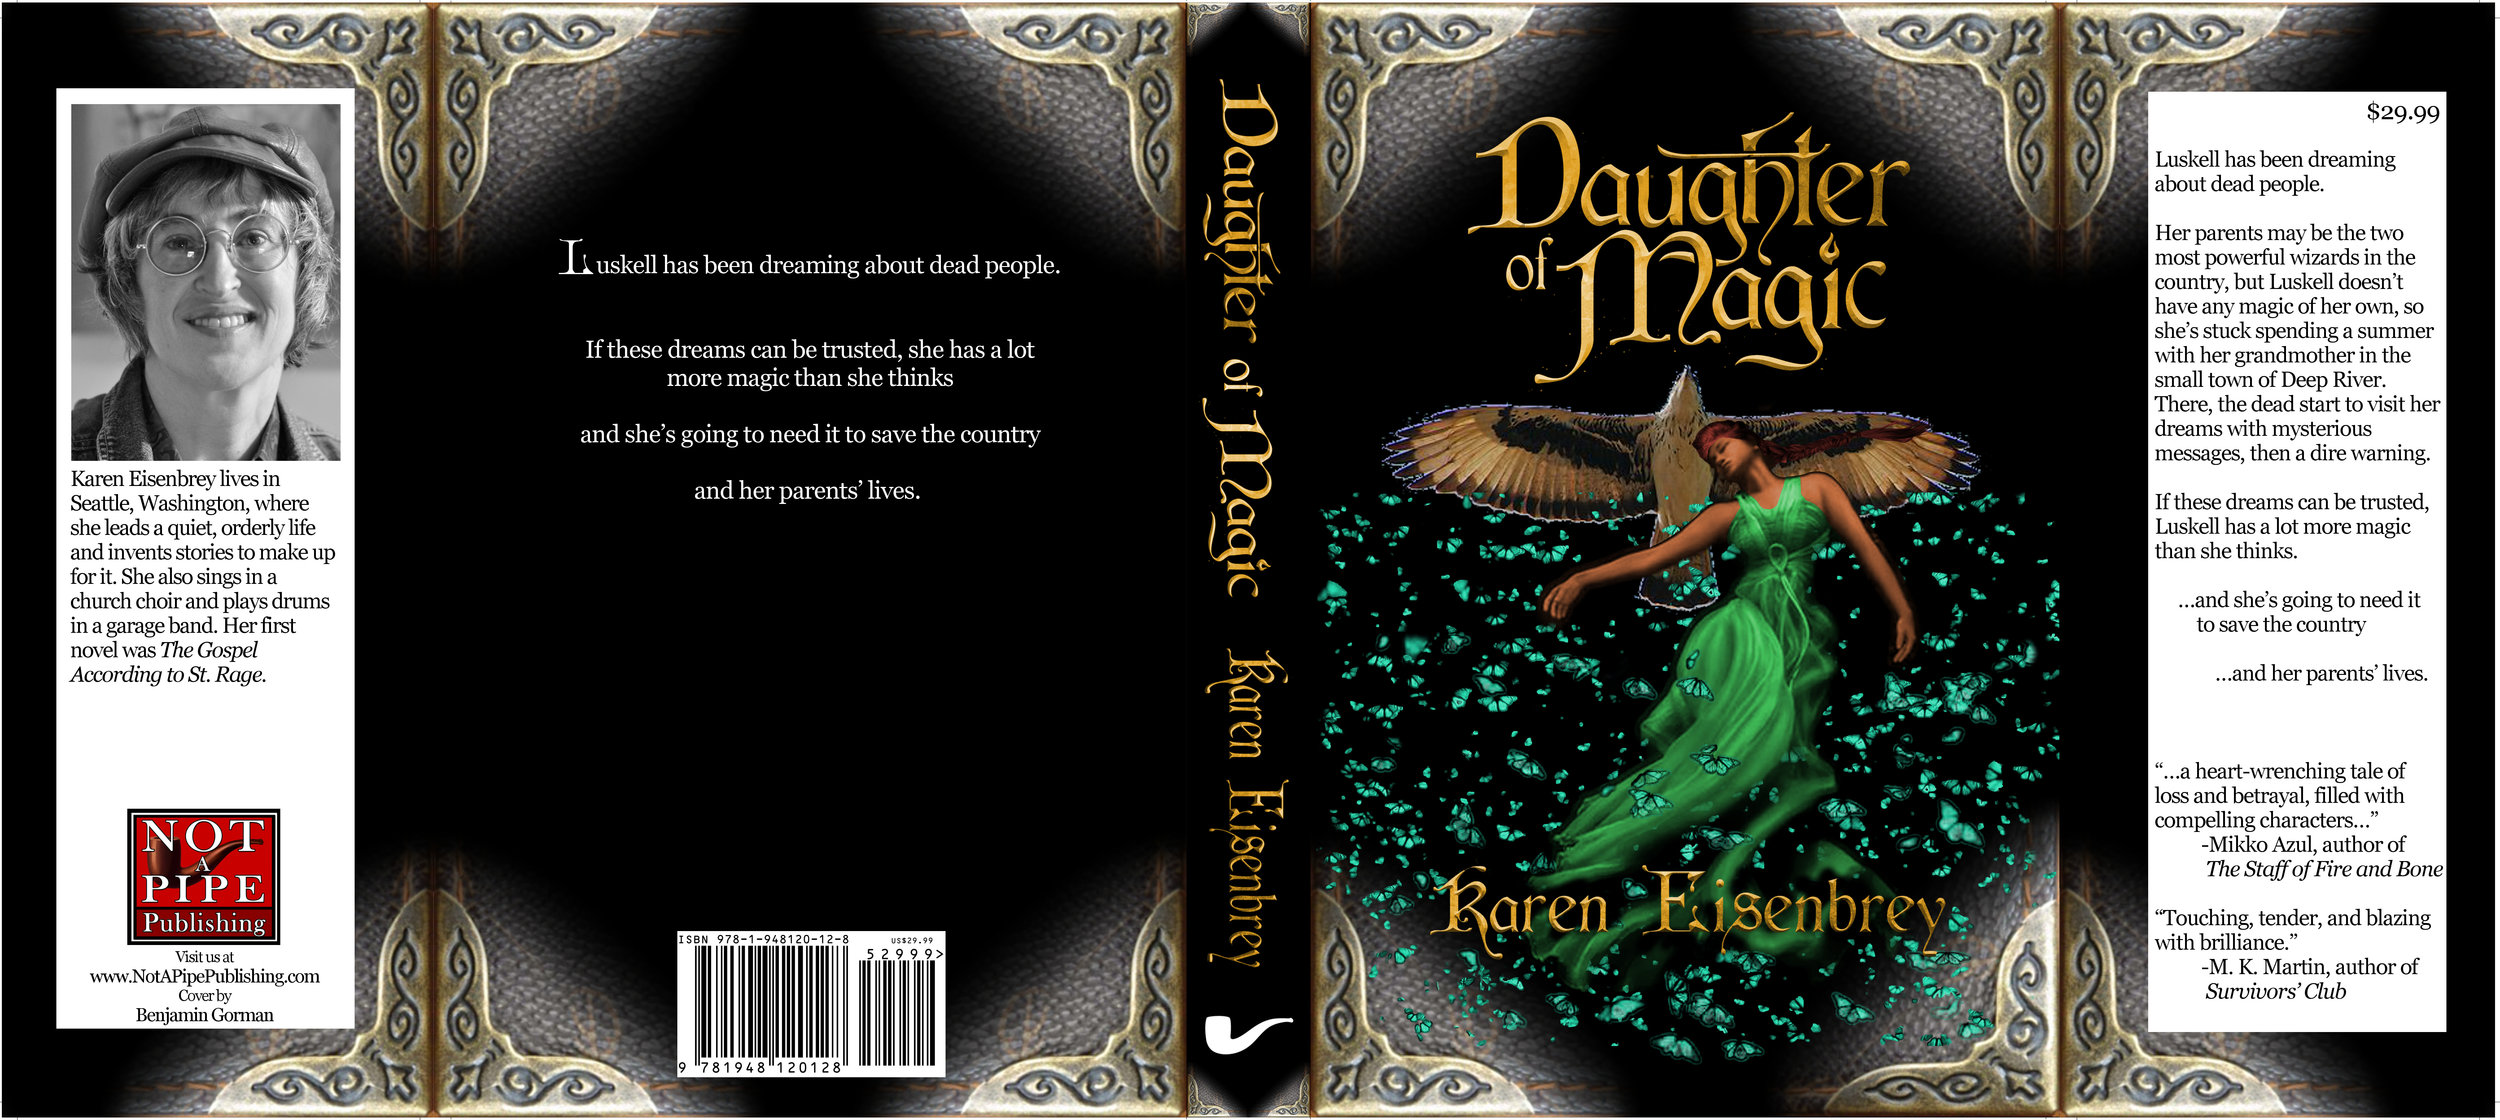 Daughter of Magic Hardcover Dustjacket for Cover Reveal.jpg